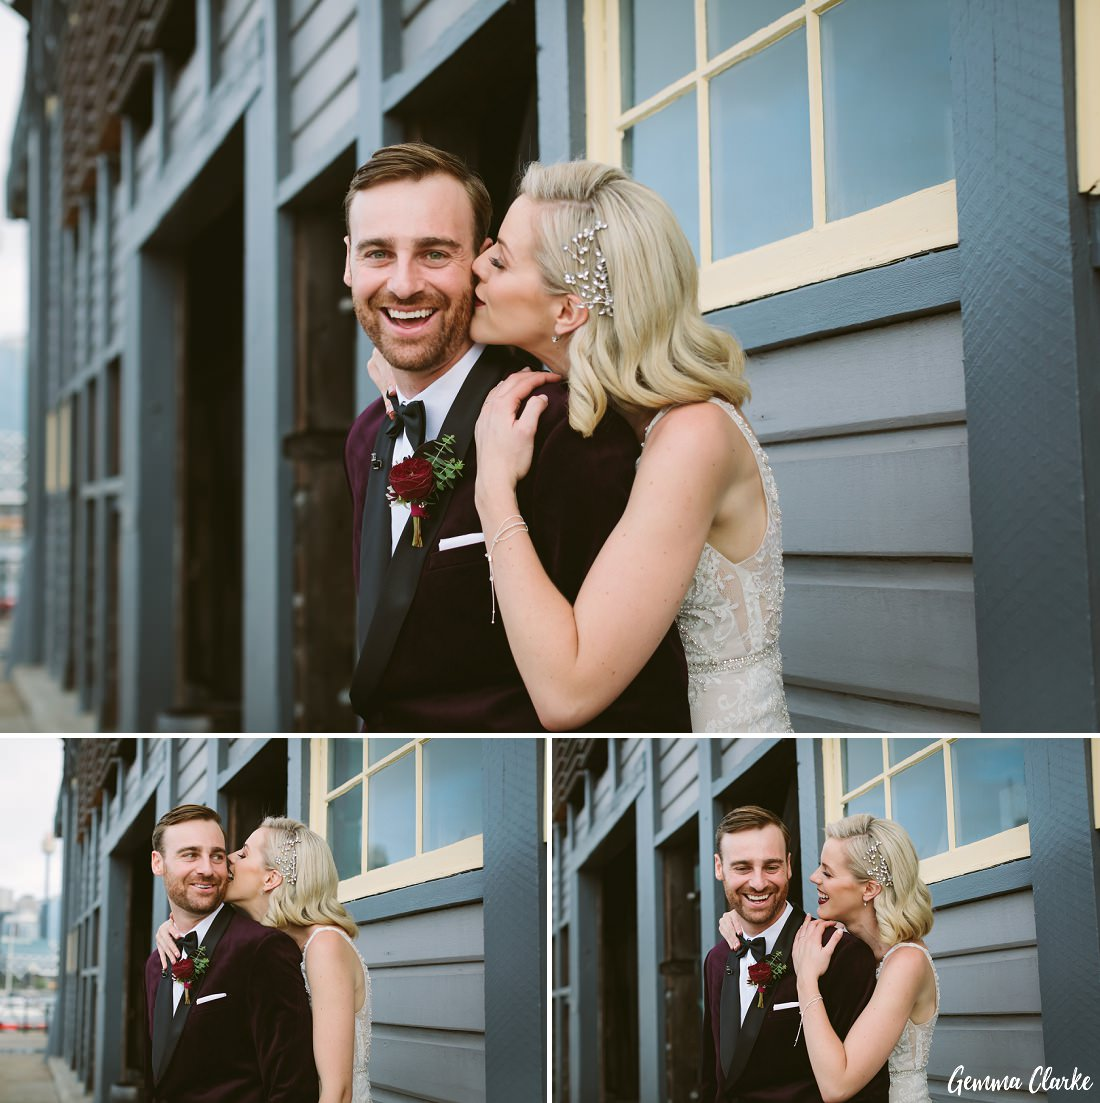 So much happiness for this bride and groom at this Cafe Morso Wedding